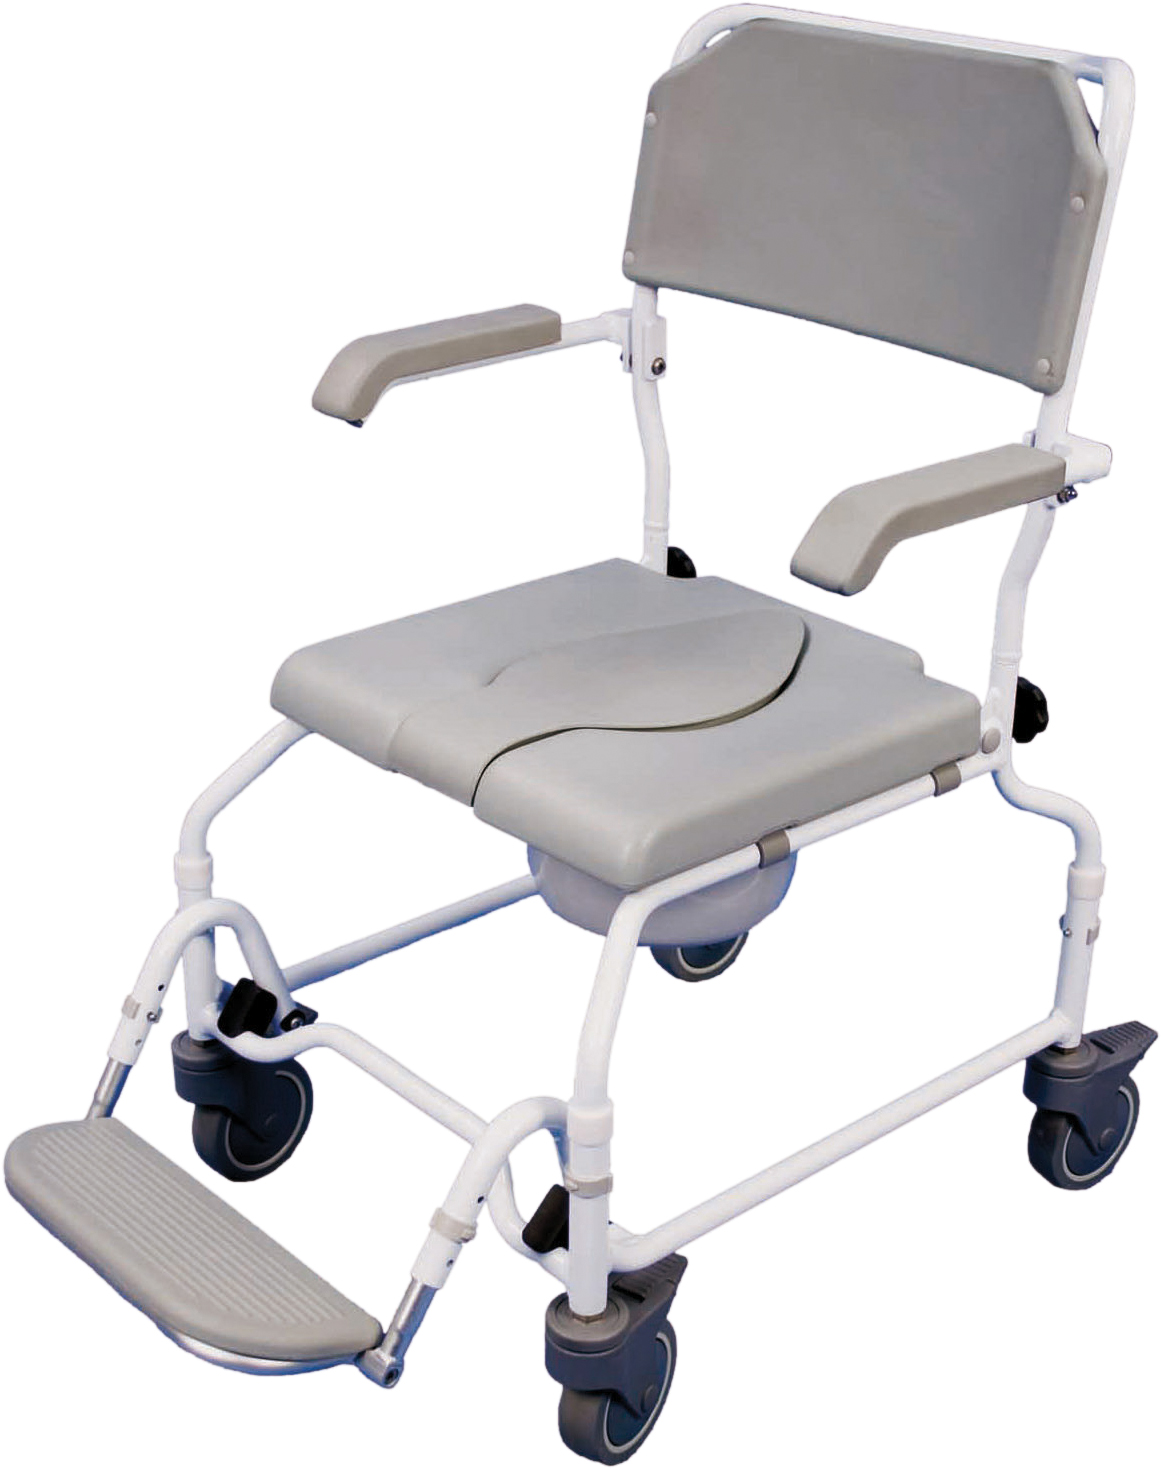 Bewl Adjustable Height Shower Commode Chair Aidapt Mobility Aids ...